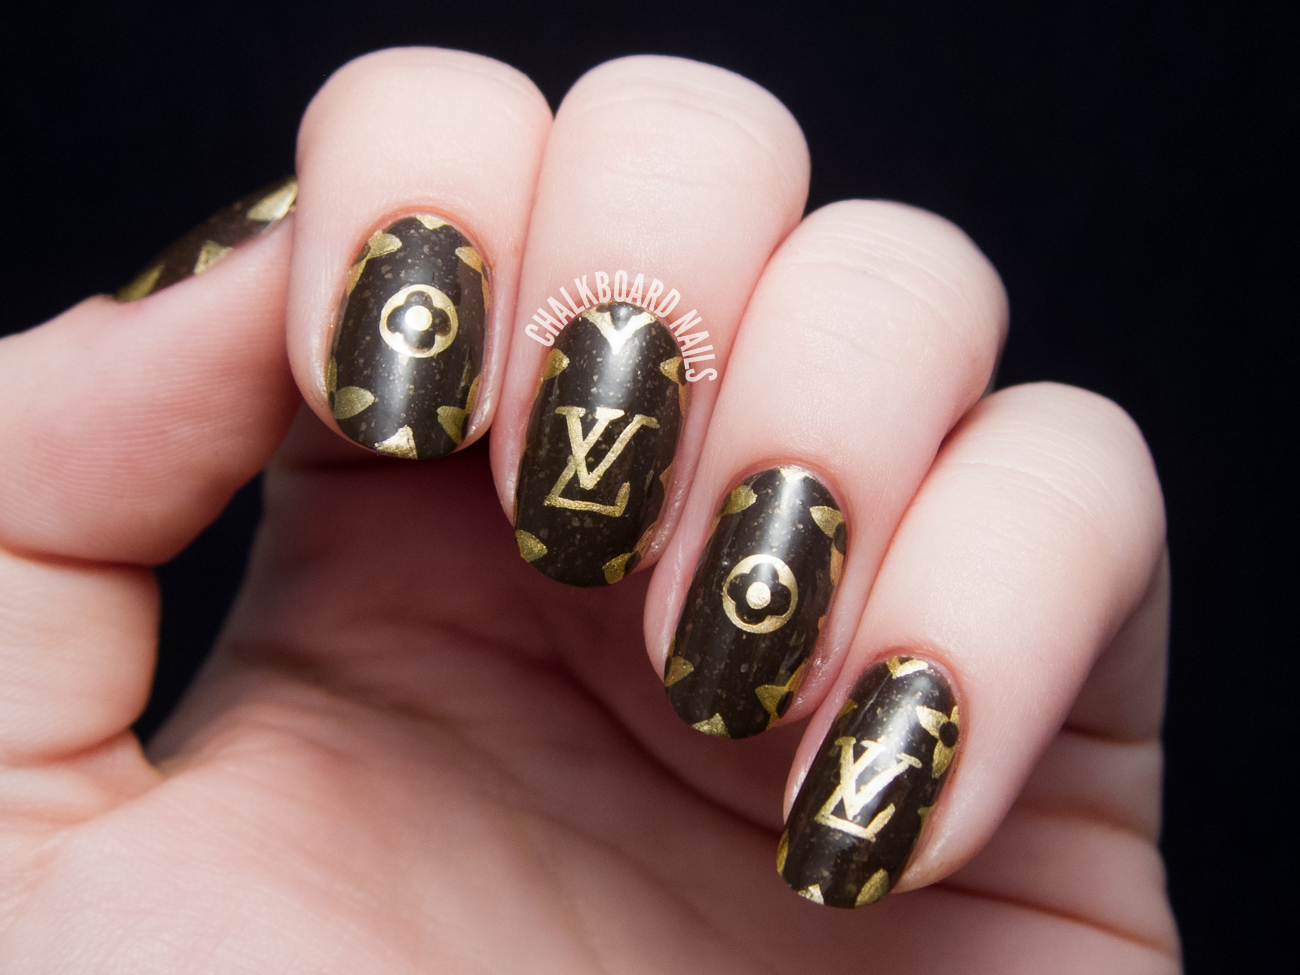 Louis Vuitton Pattern Freehand Nail Art by @chalkboardnails